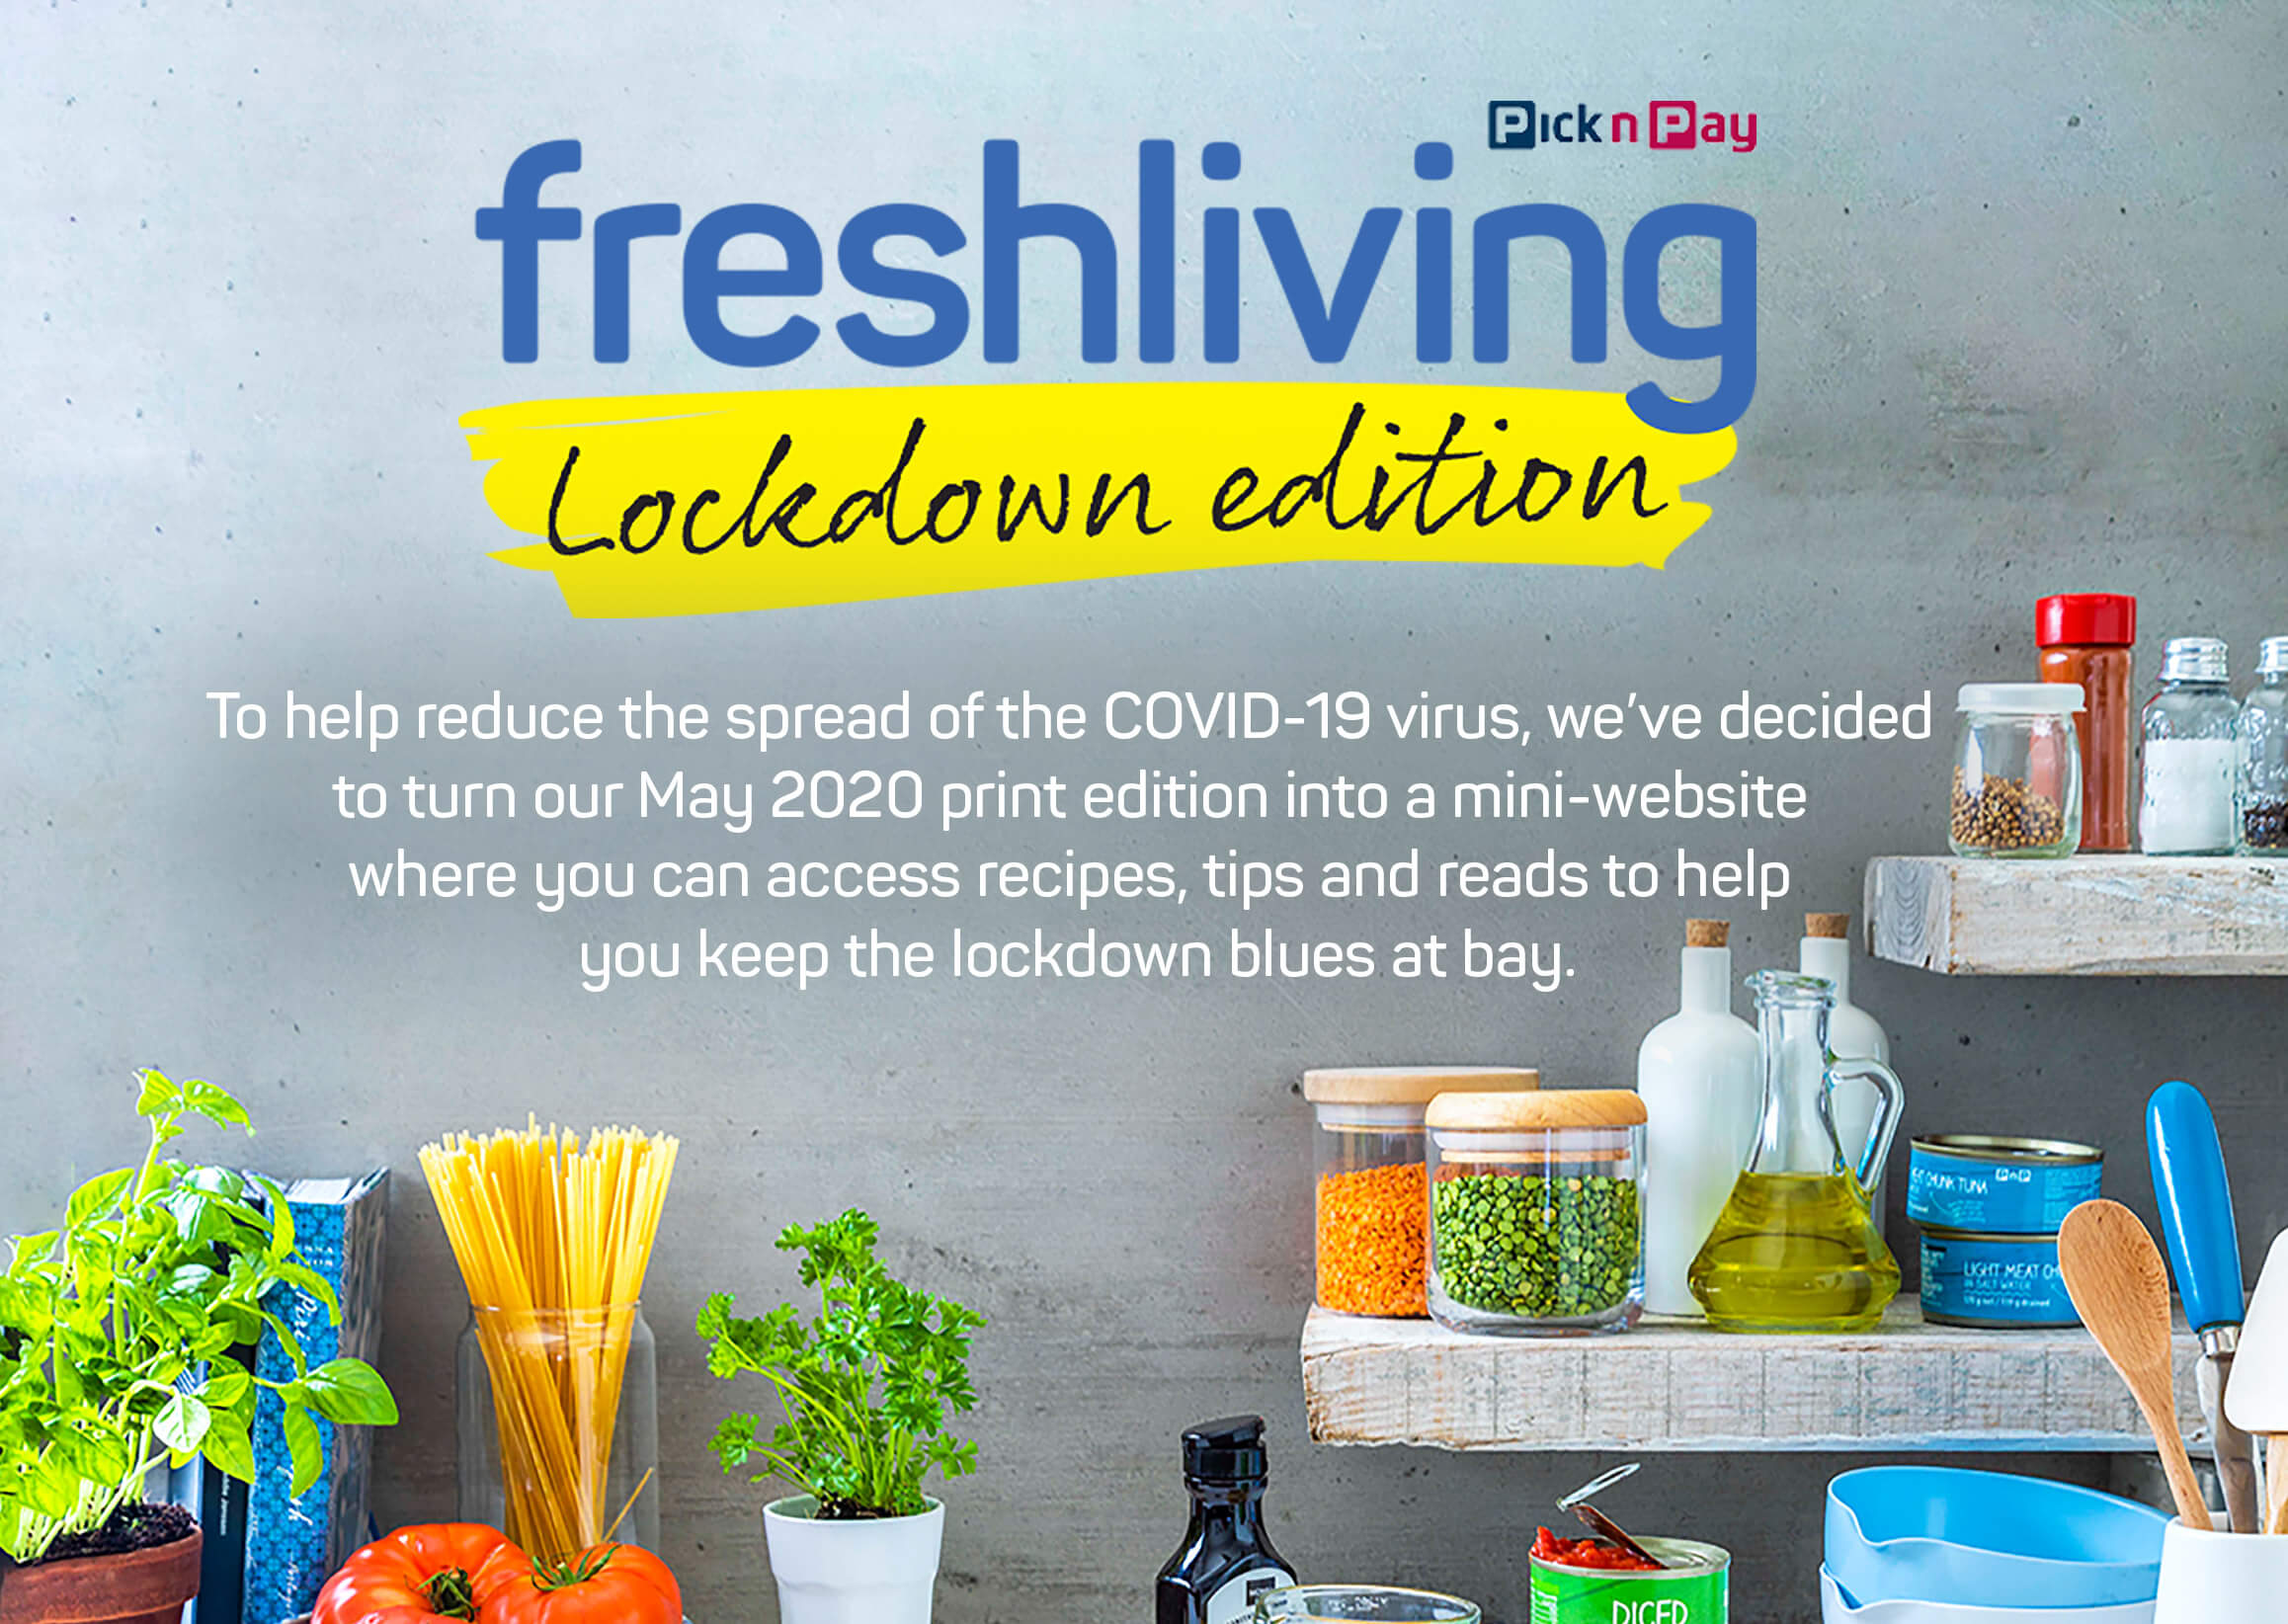 Freshliving Lockdown edition. To help reduce the spread of the COVID-19 virus, we've decided  to turn our May 2020 print edition into a mini-website  where you can access recipes, tips and reads to help  you keep the lockdown blues at bay.